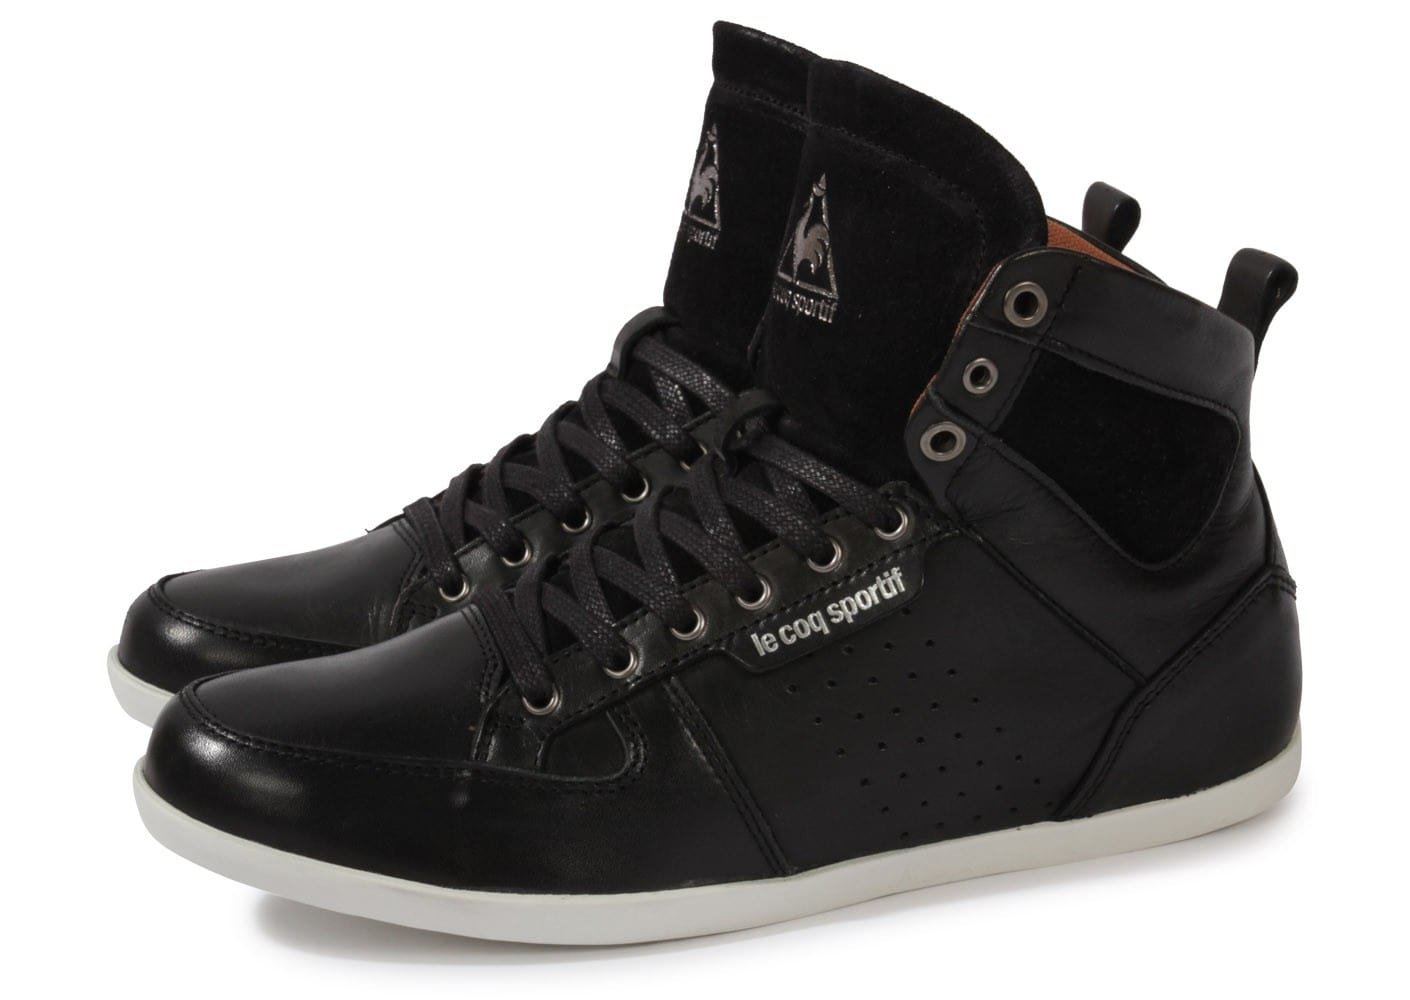 le coq sportif bizot hi cuir noir chaussures homme chausport. Black Bedroom Furniture Sets. Home Design Ideas